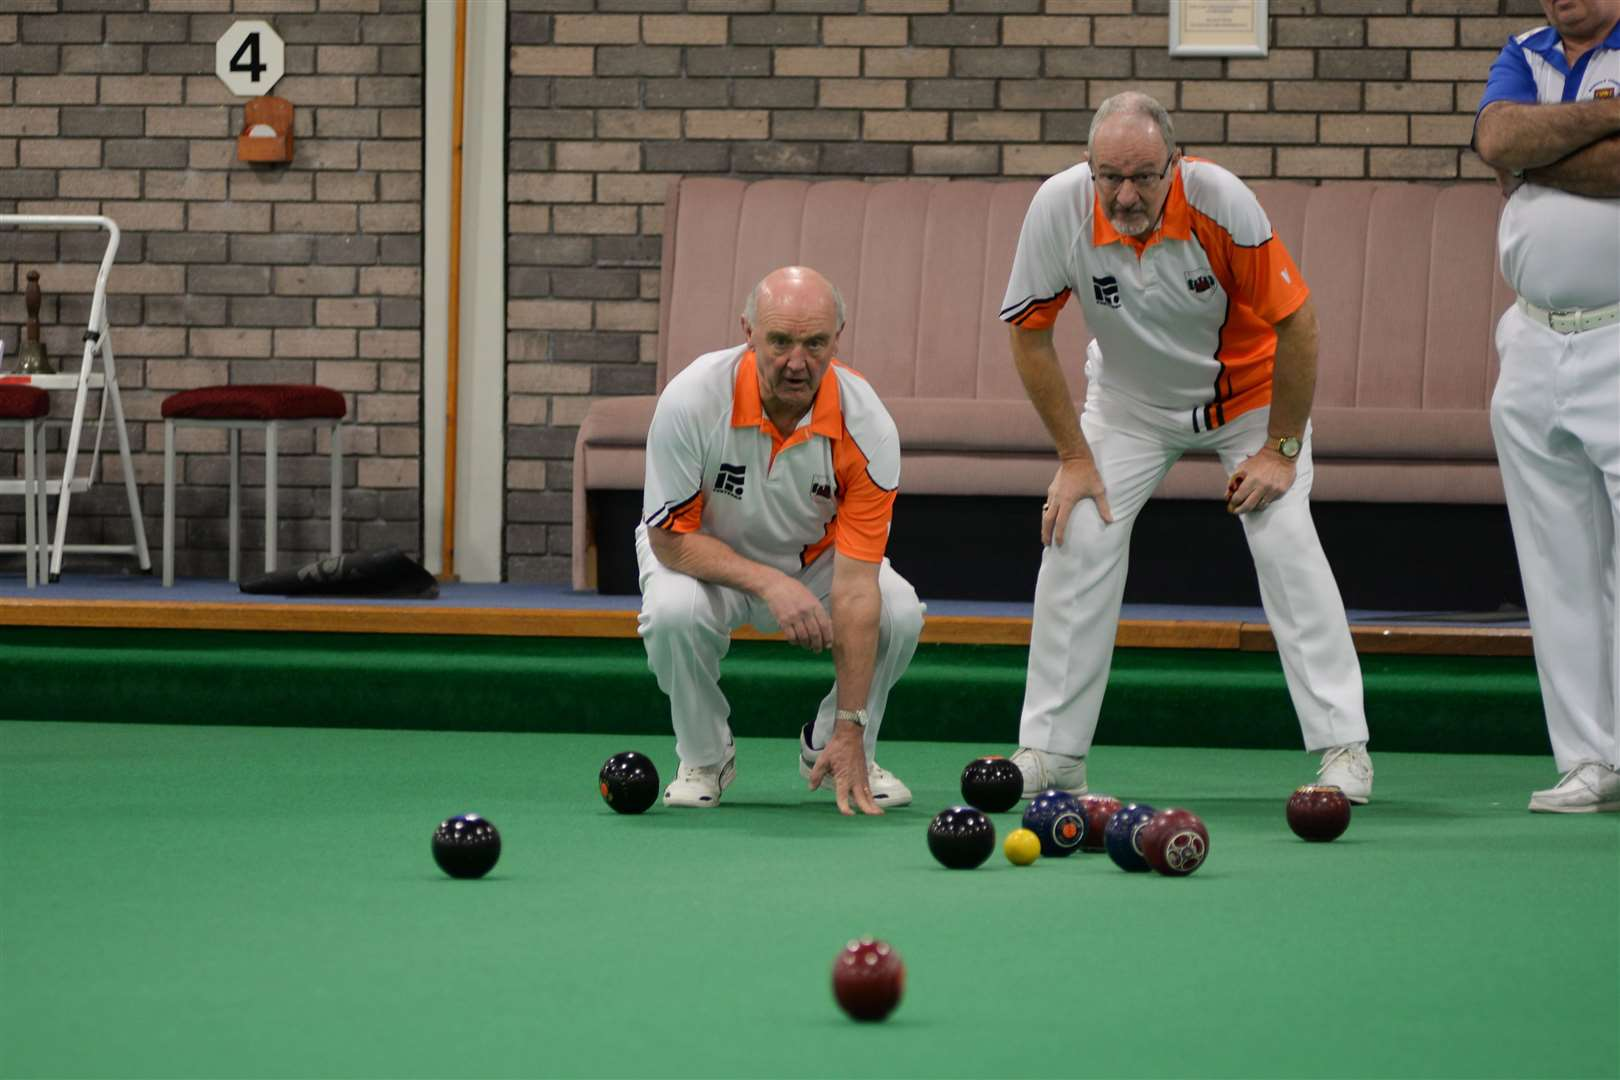 Martyn Dolby (left) and Tony Scarr anticipate an incoming bowl (7435602)